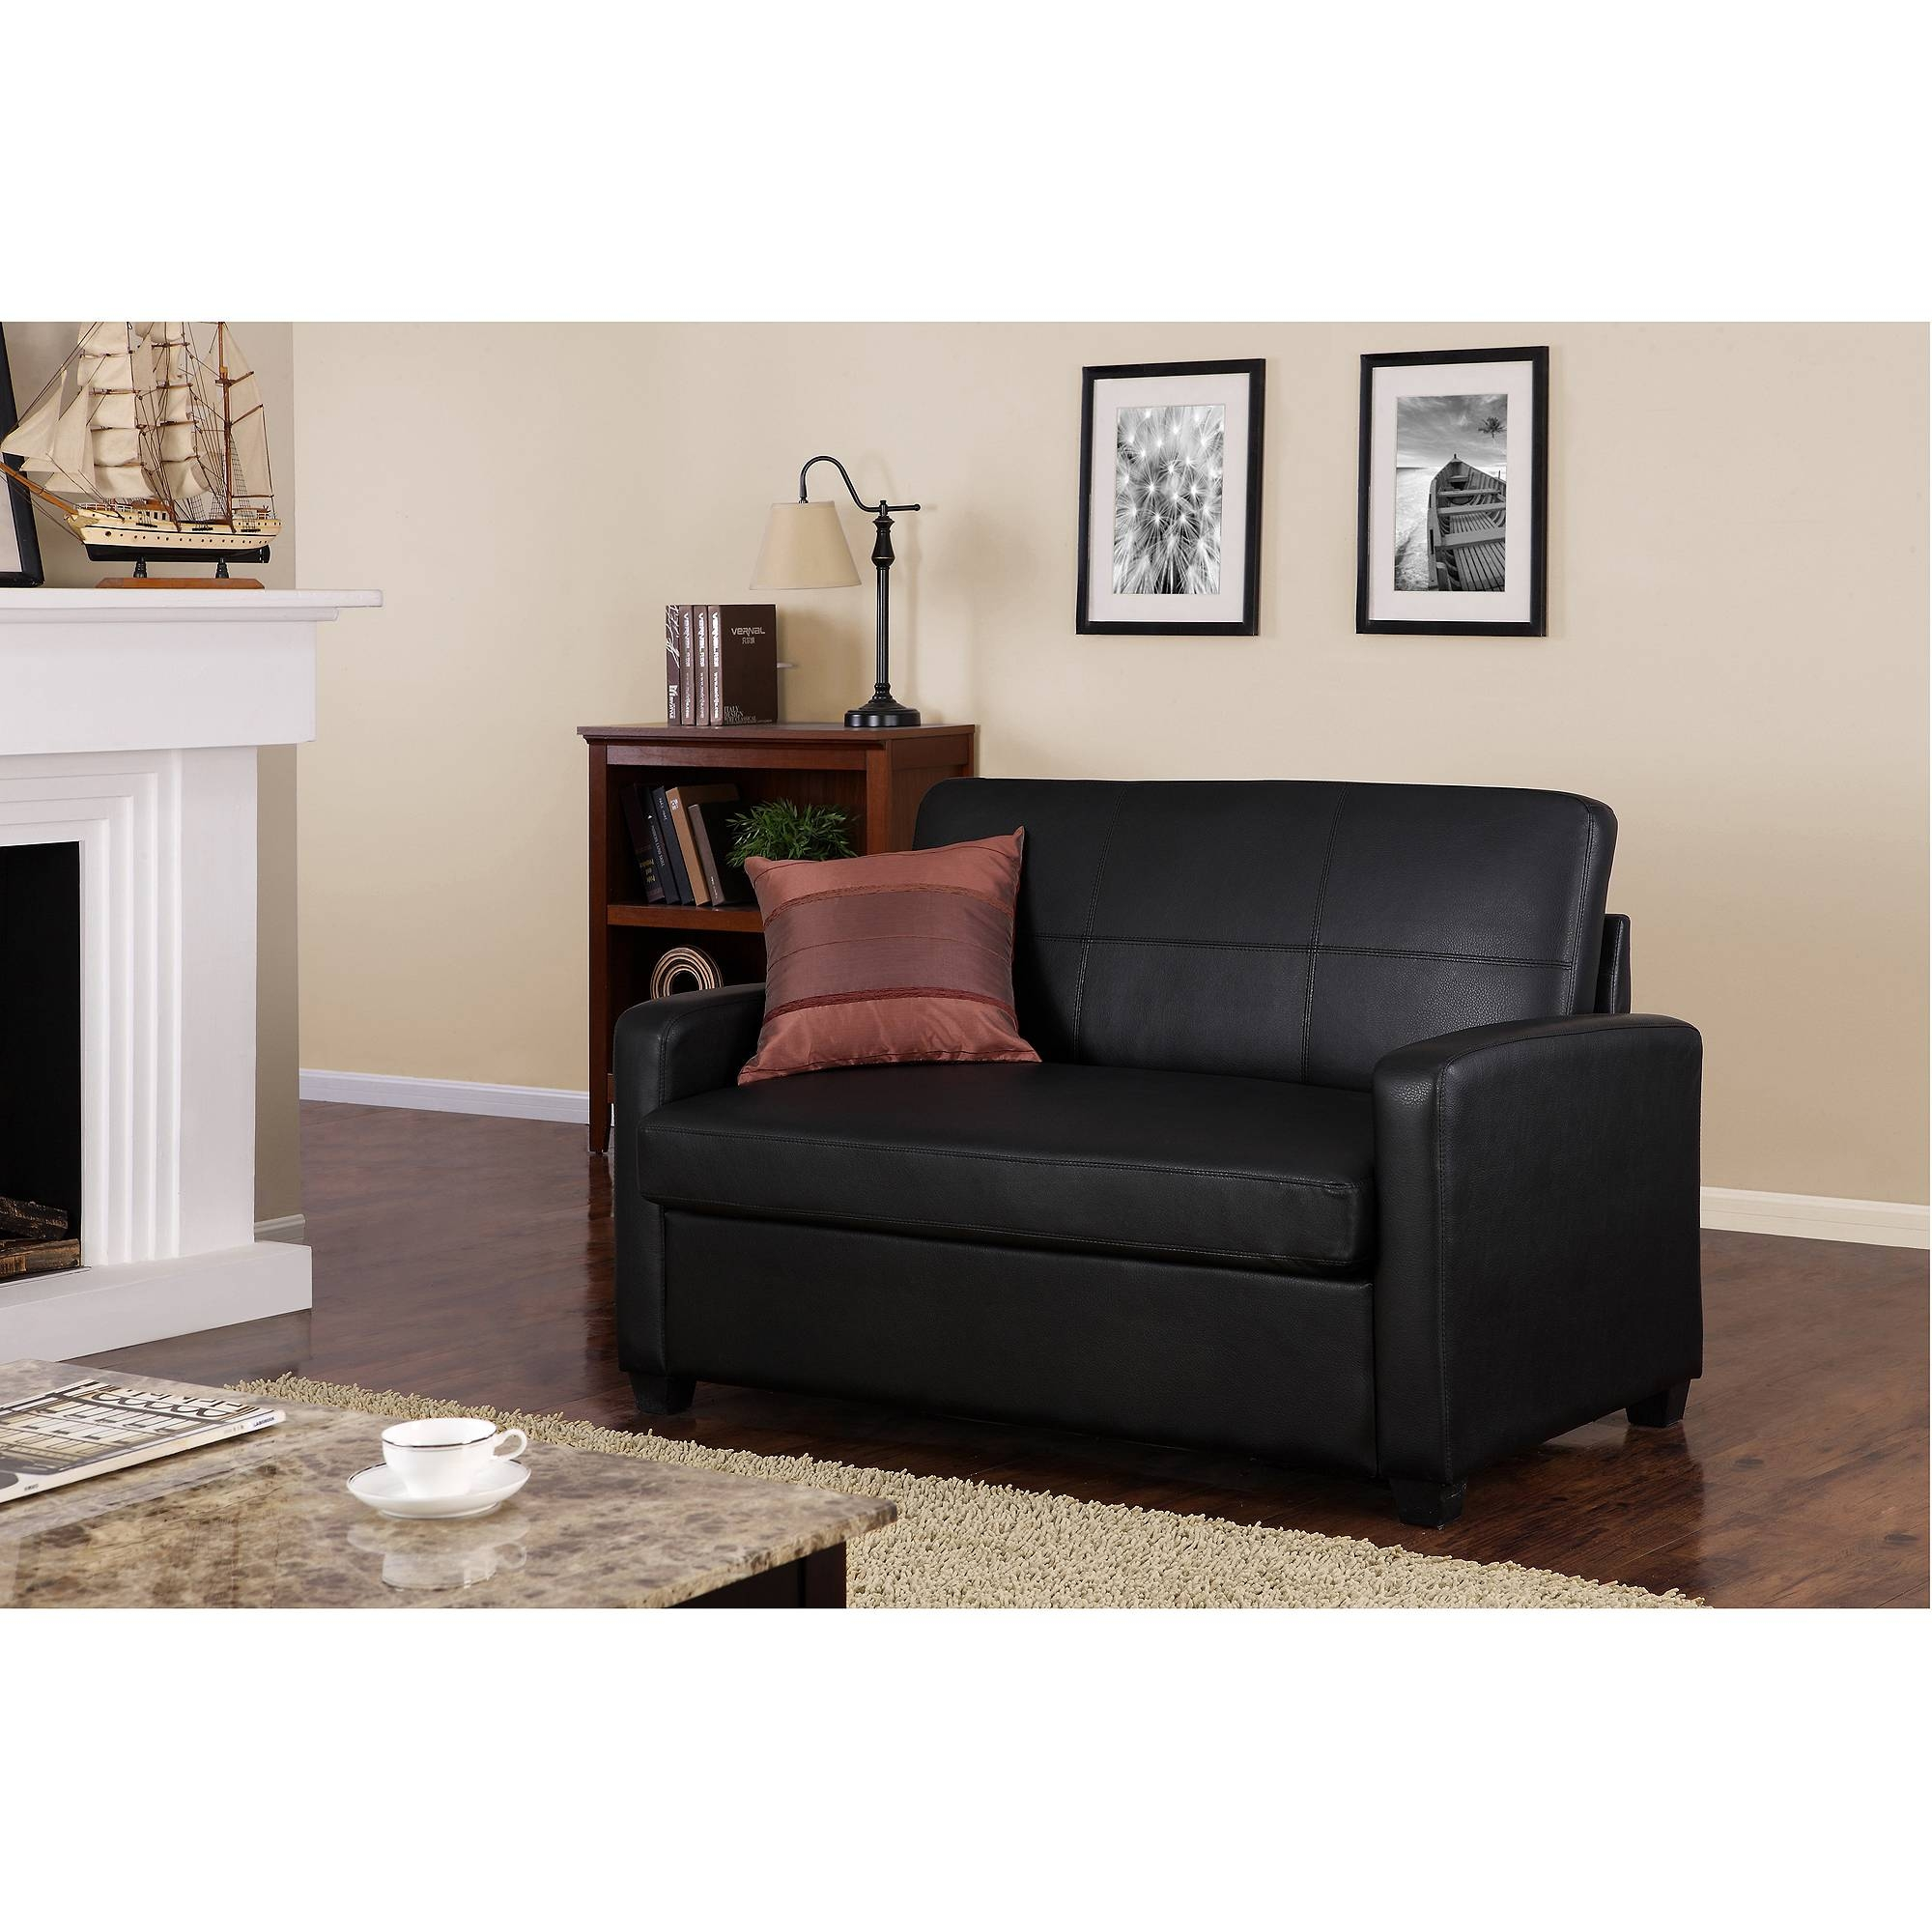 Mainstays Sofa Sleeper Brown Faux Leather | Centerfieldbar for Faux Leather Sleeper Sofas (Image 11 of 15)